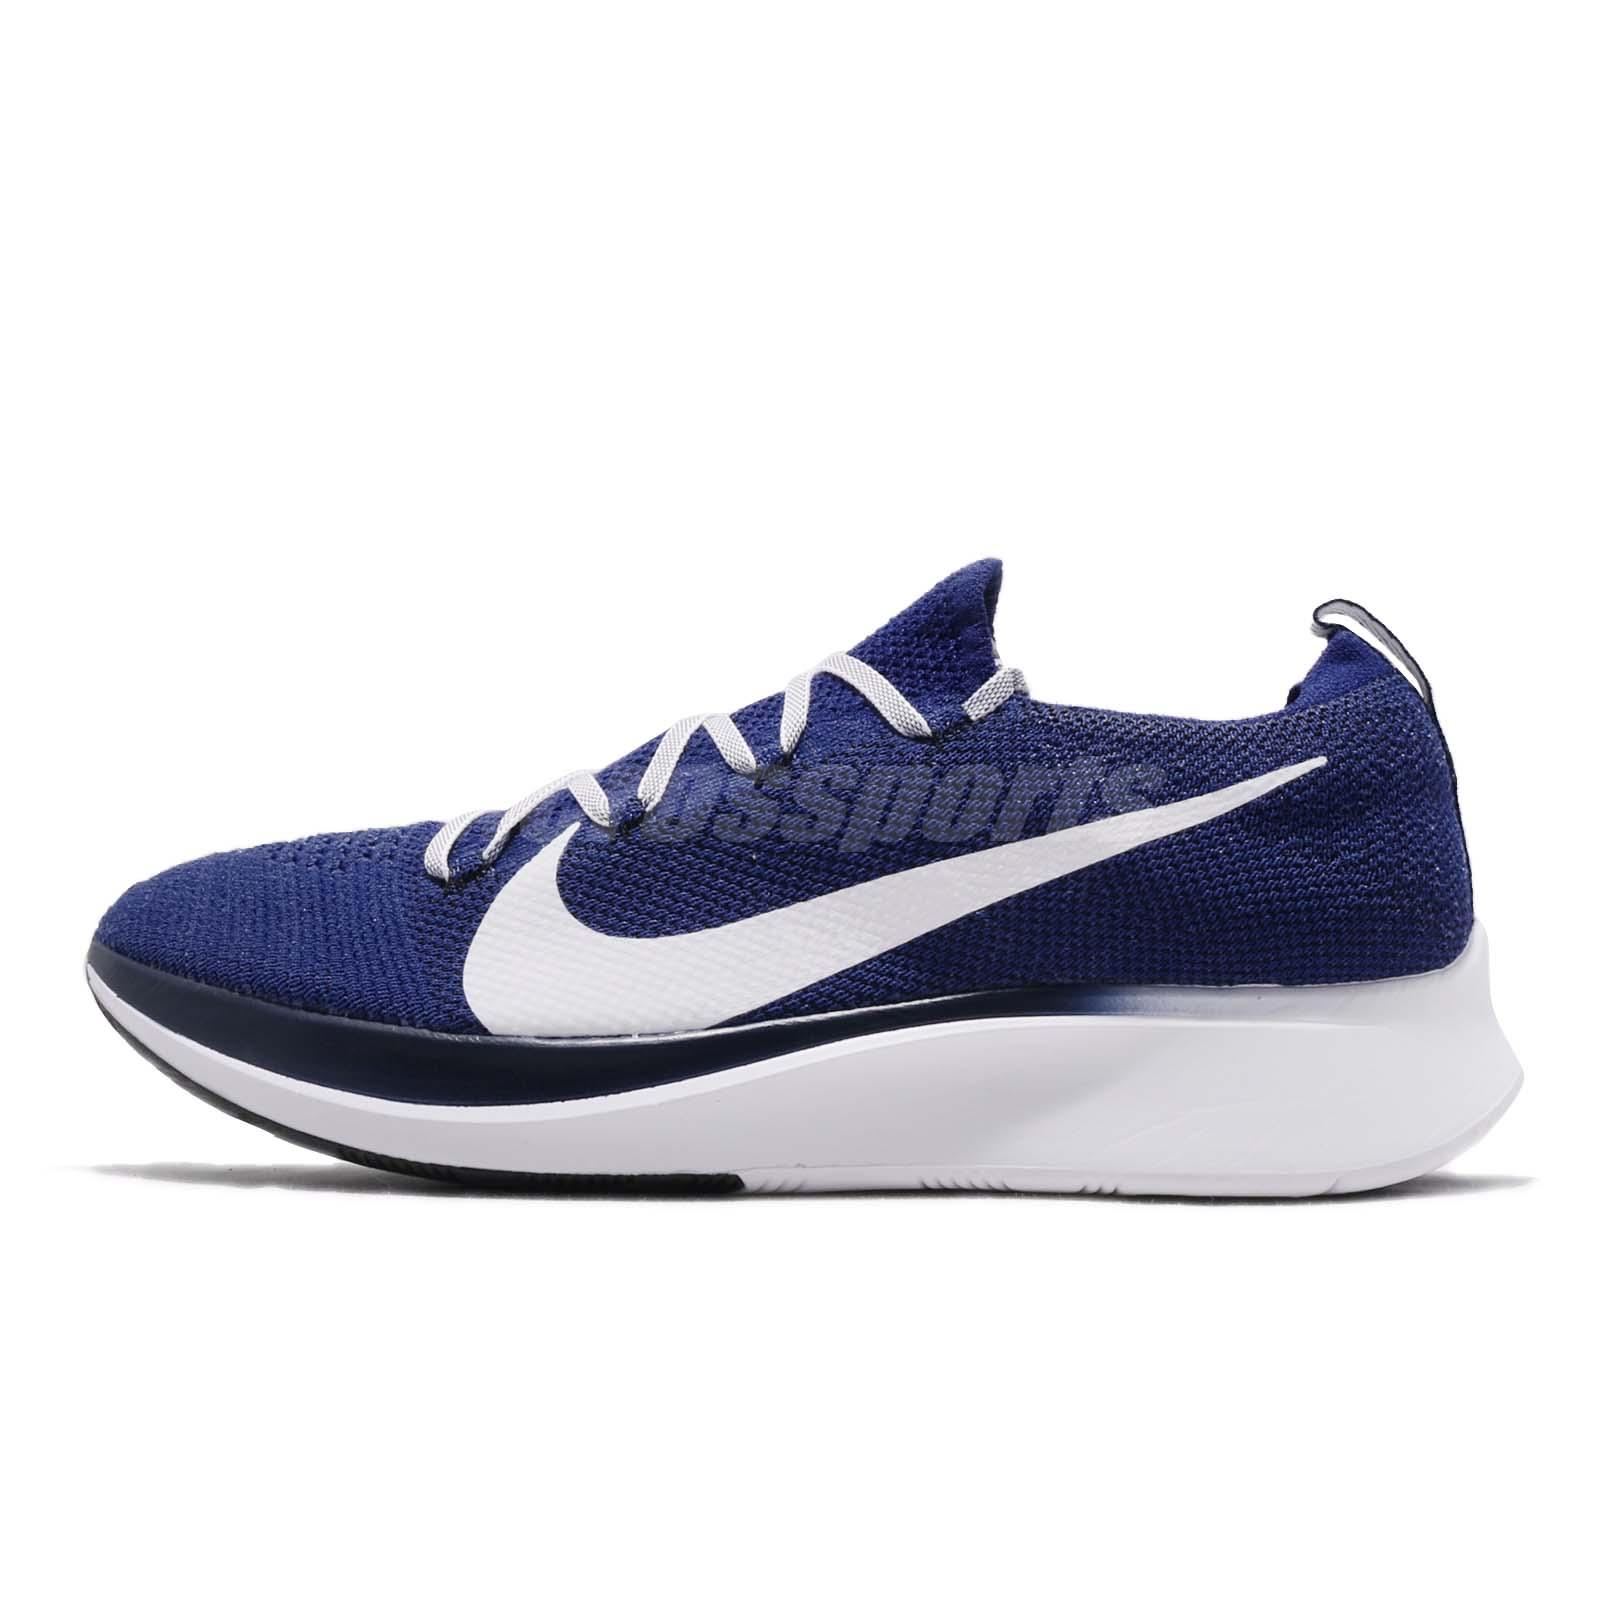 c878c8988c768 Details about Nike Zoom Fly FK Flyknit Deep Royal White Blue Void Men  Running Shoes AR4561-400